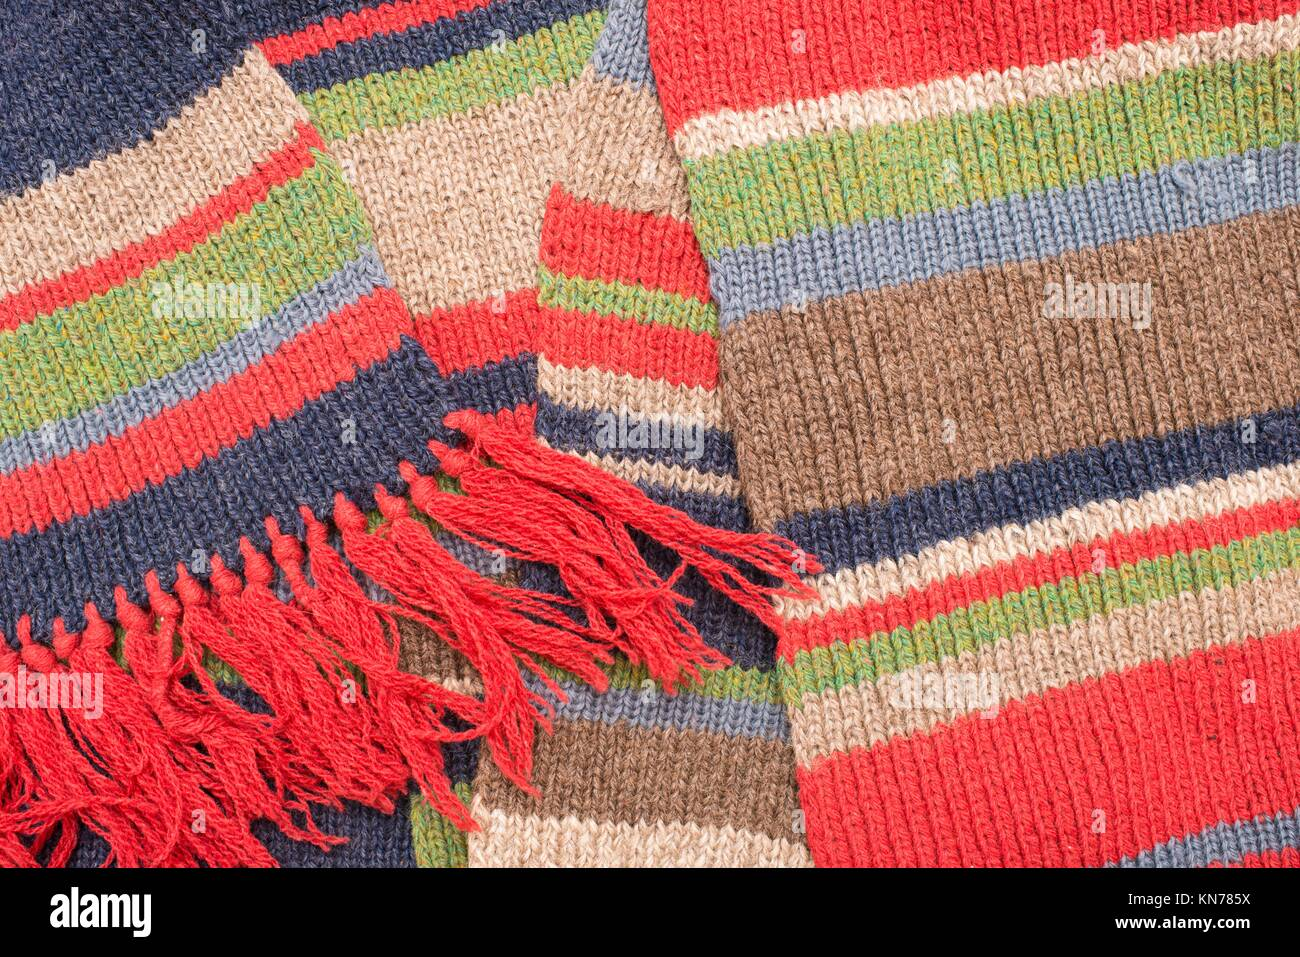 Striped wool scarf. Knitted pattern. - Stock Image